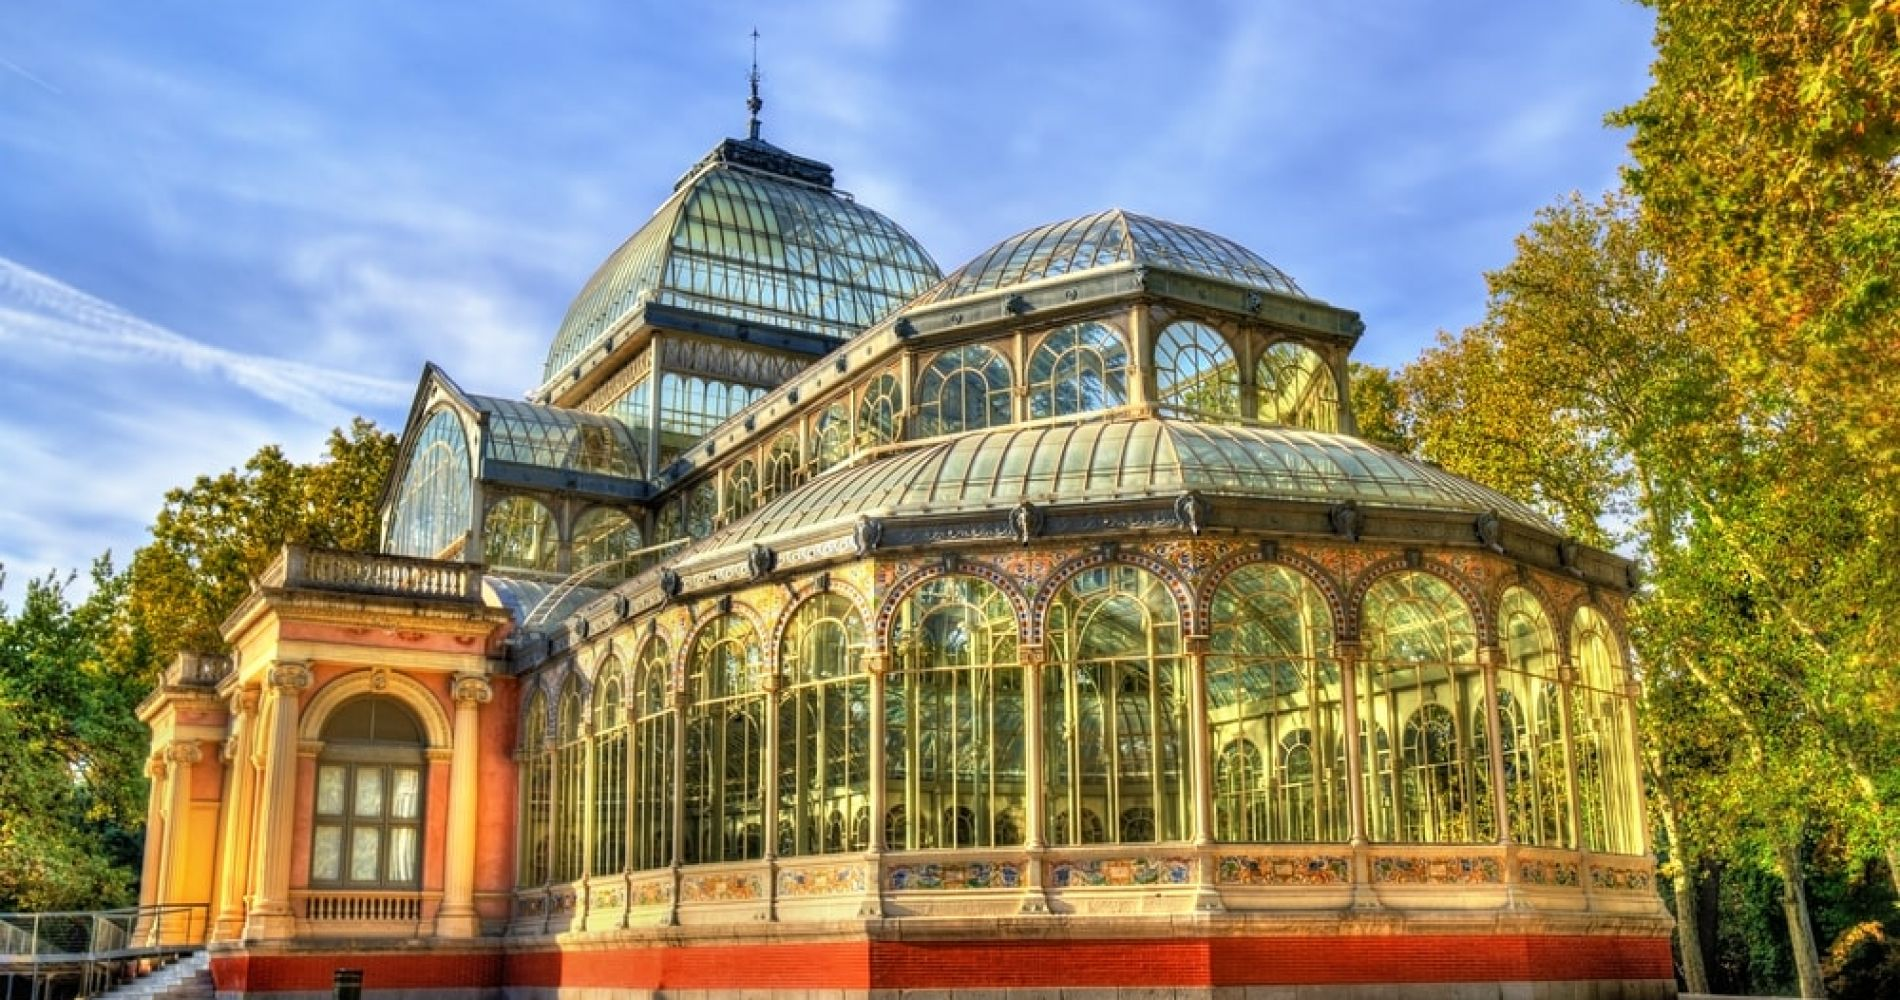 Admire the Palacio de Cristal in Madrid